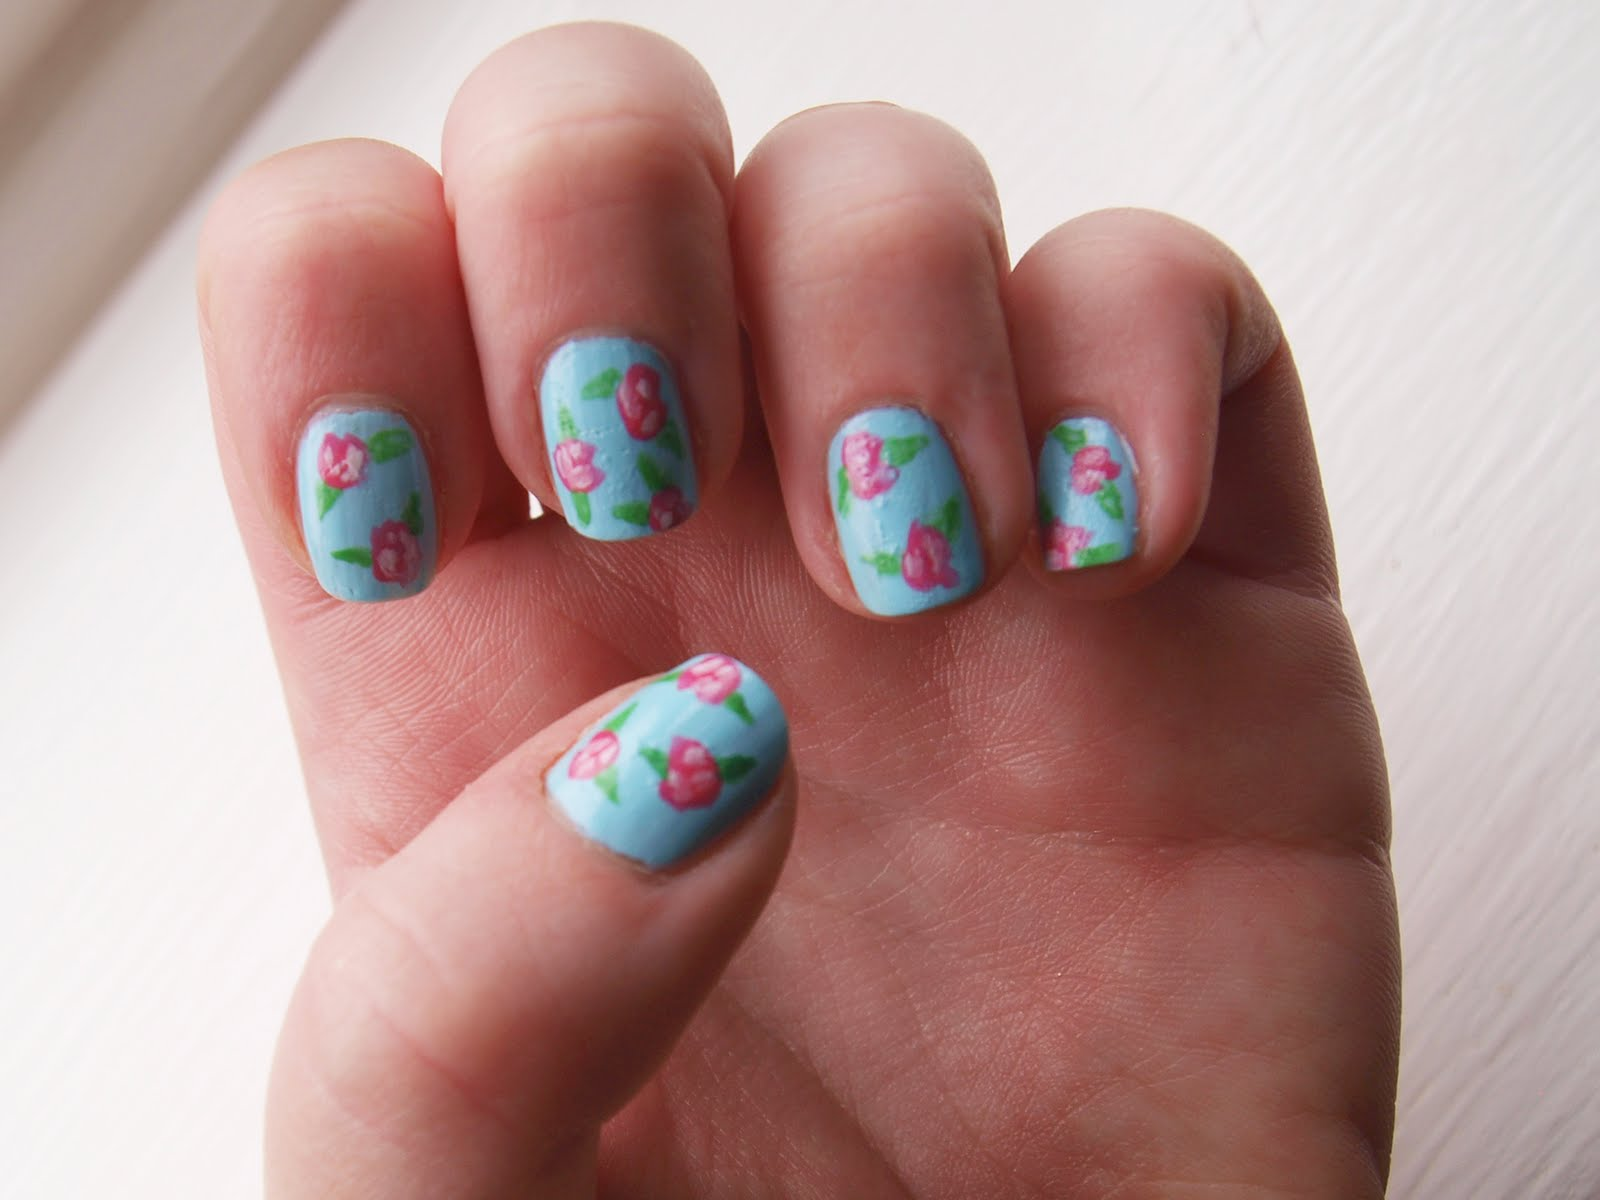 Cute Nail Designs Tumblr - Pccala